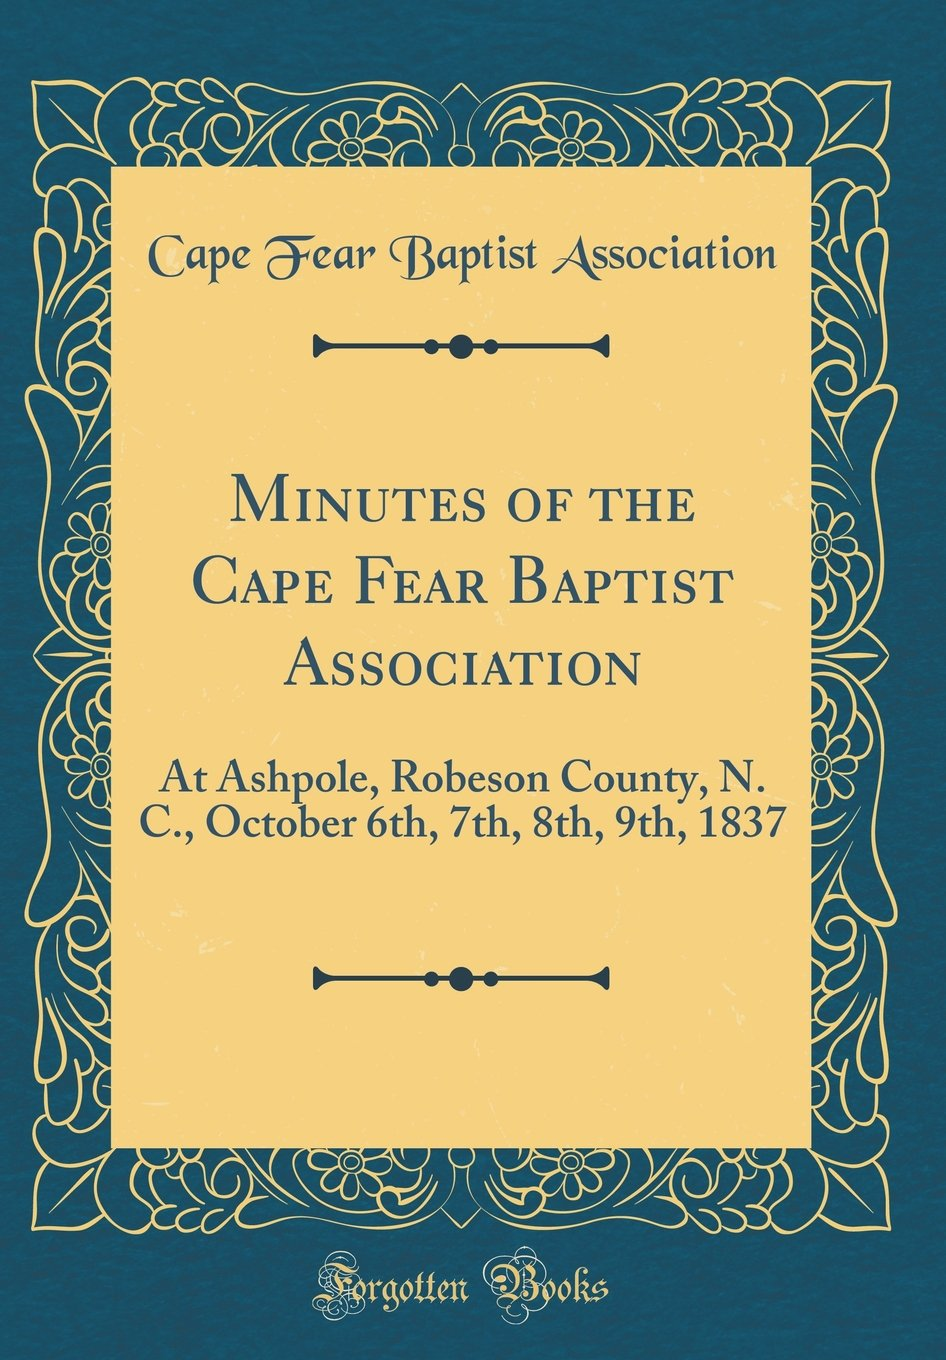 Minutes of the Cape Fear Baptist Association: At Ashpole, Robeson County, N. C., October 6th, 7th, 8th, 9th, 1837 (Classic Reprint) ebook